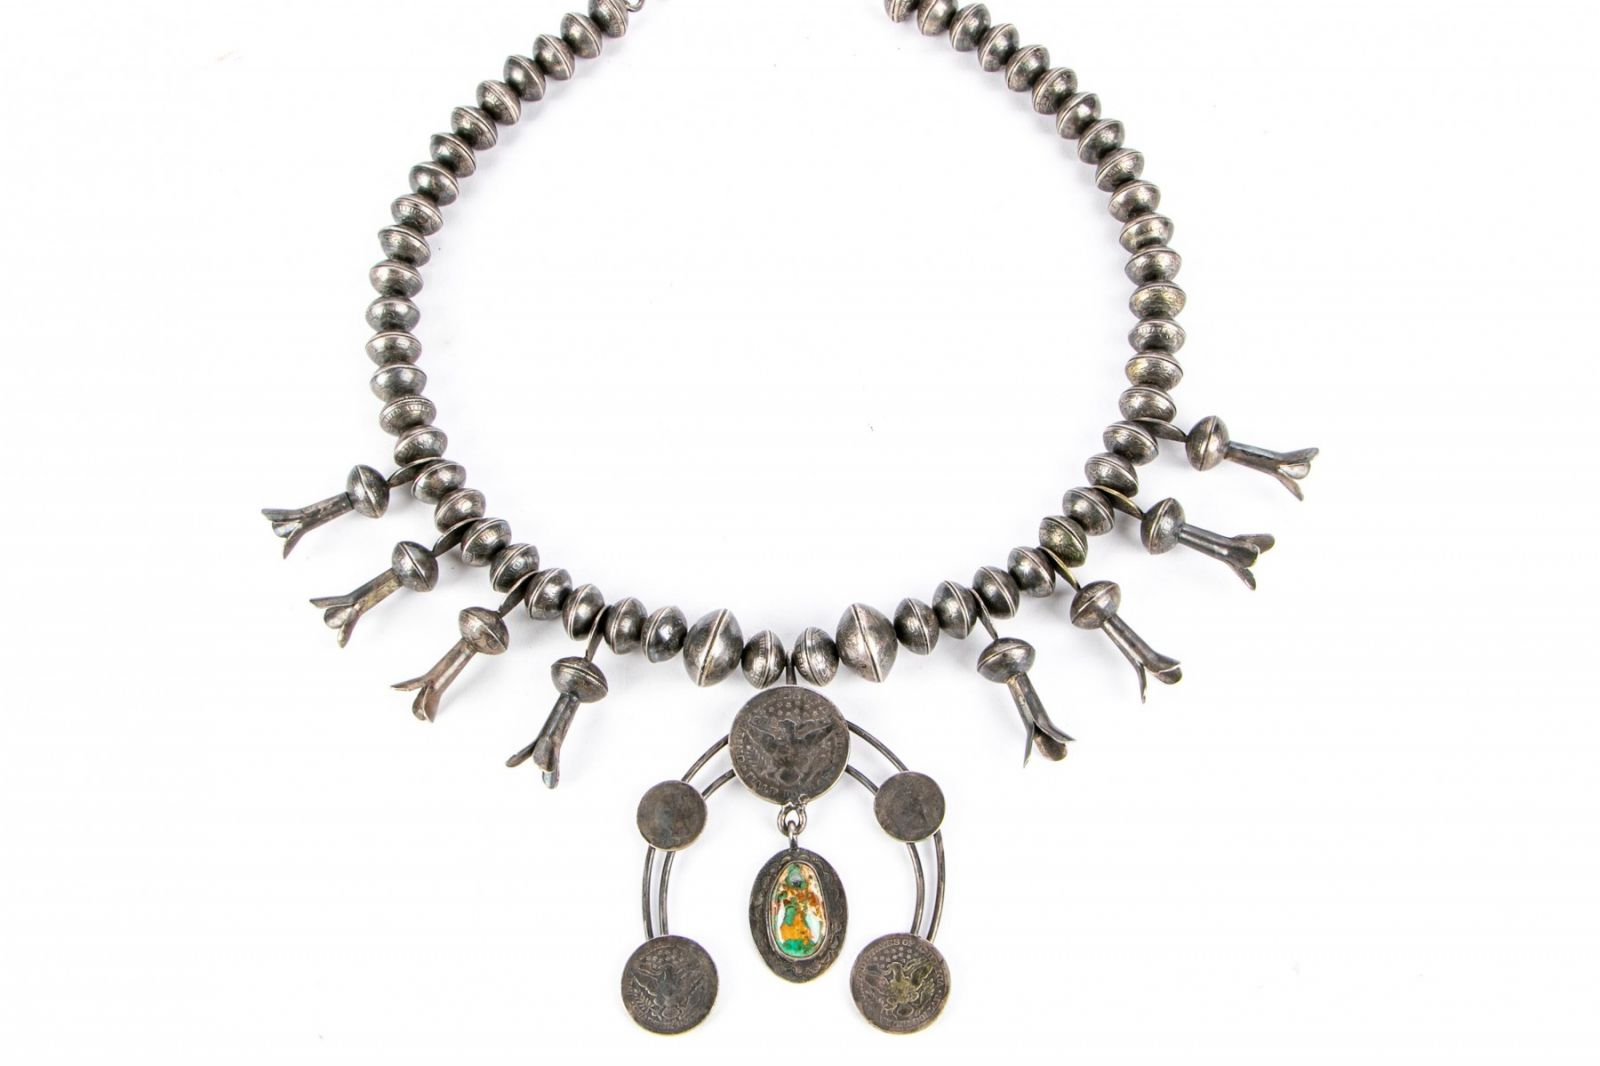 Squash Blossom Necklace with Coins Item #105346